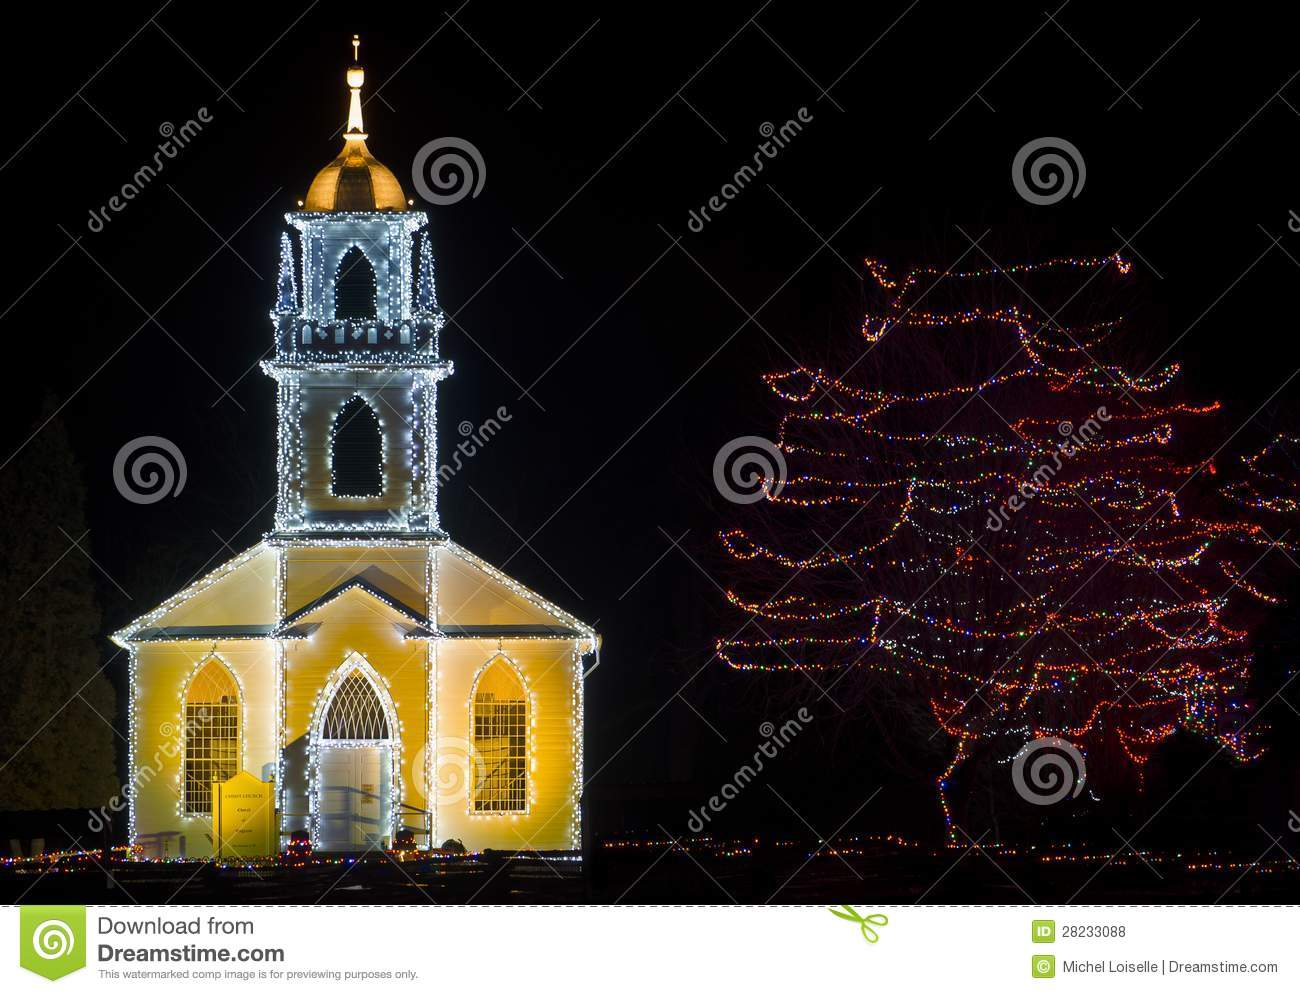 Beautiful village church with bell tower decorated for christmas